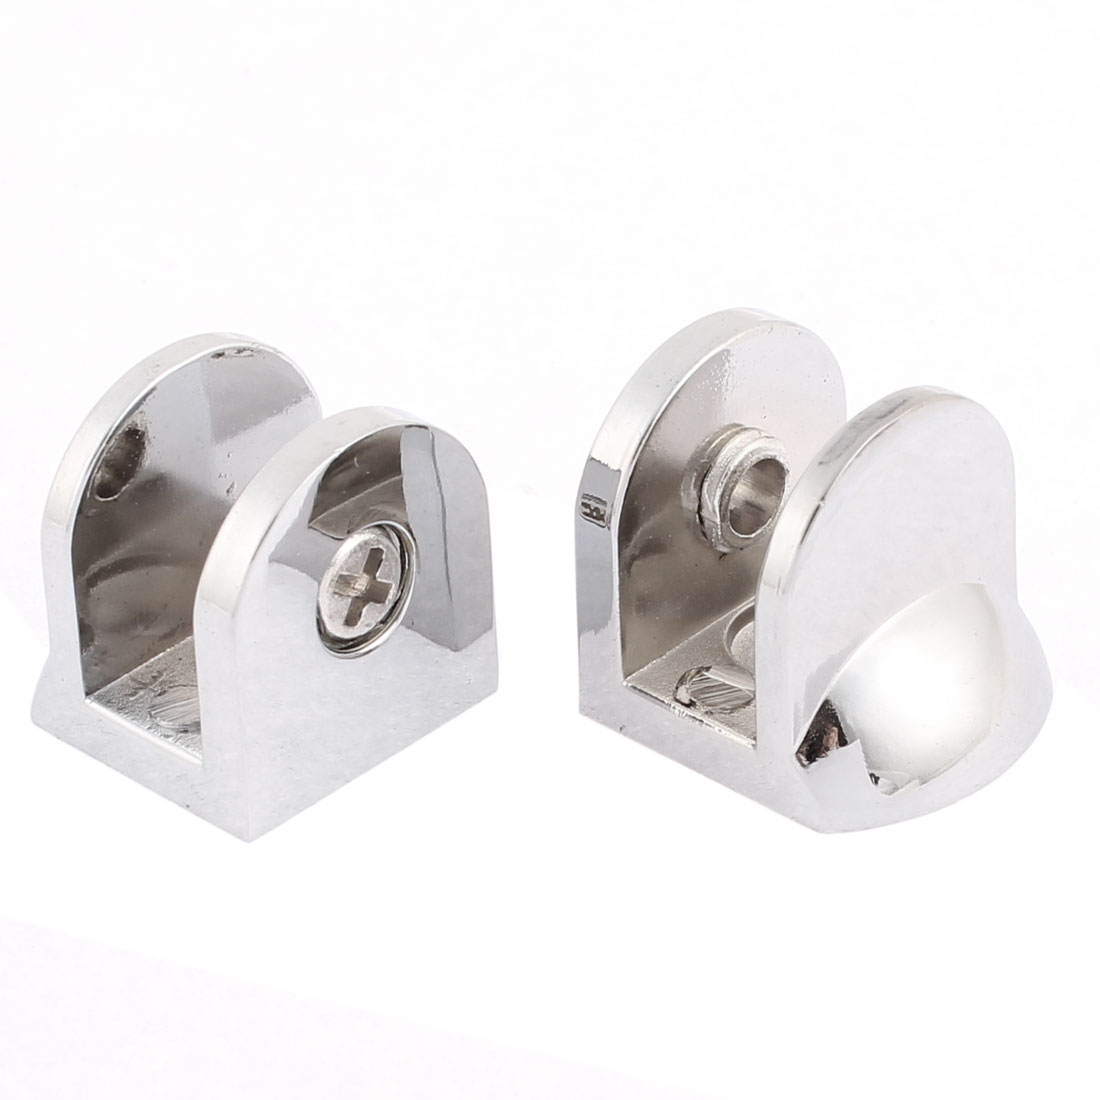 10mm Thickness Metal Glass Shelf Clip Clamp Bracket Support 2pcs